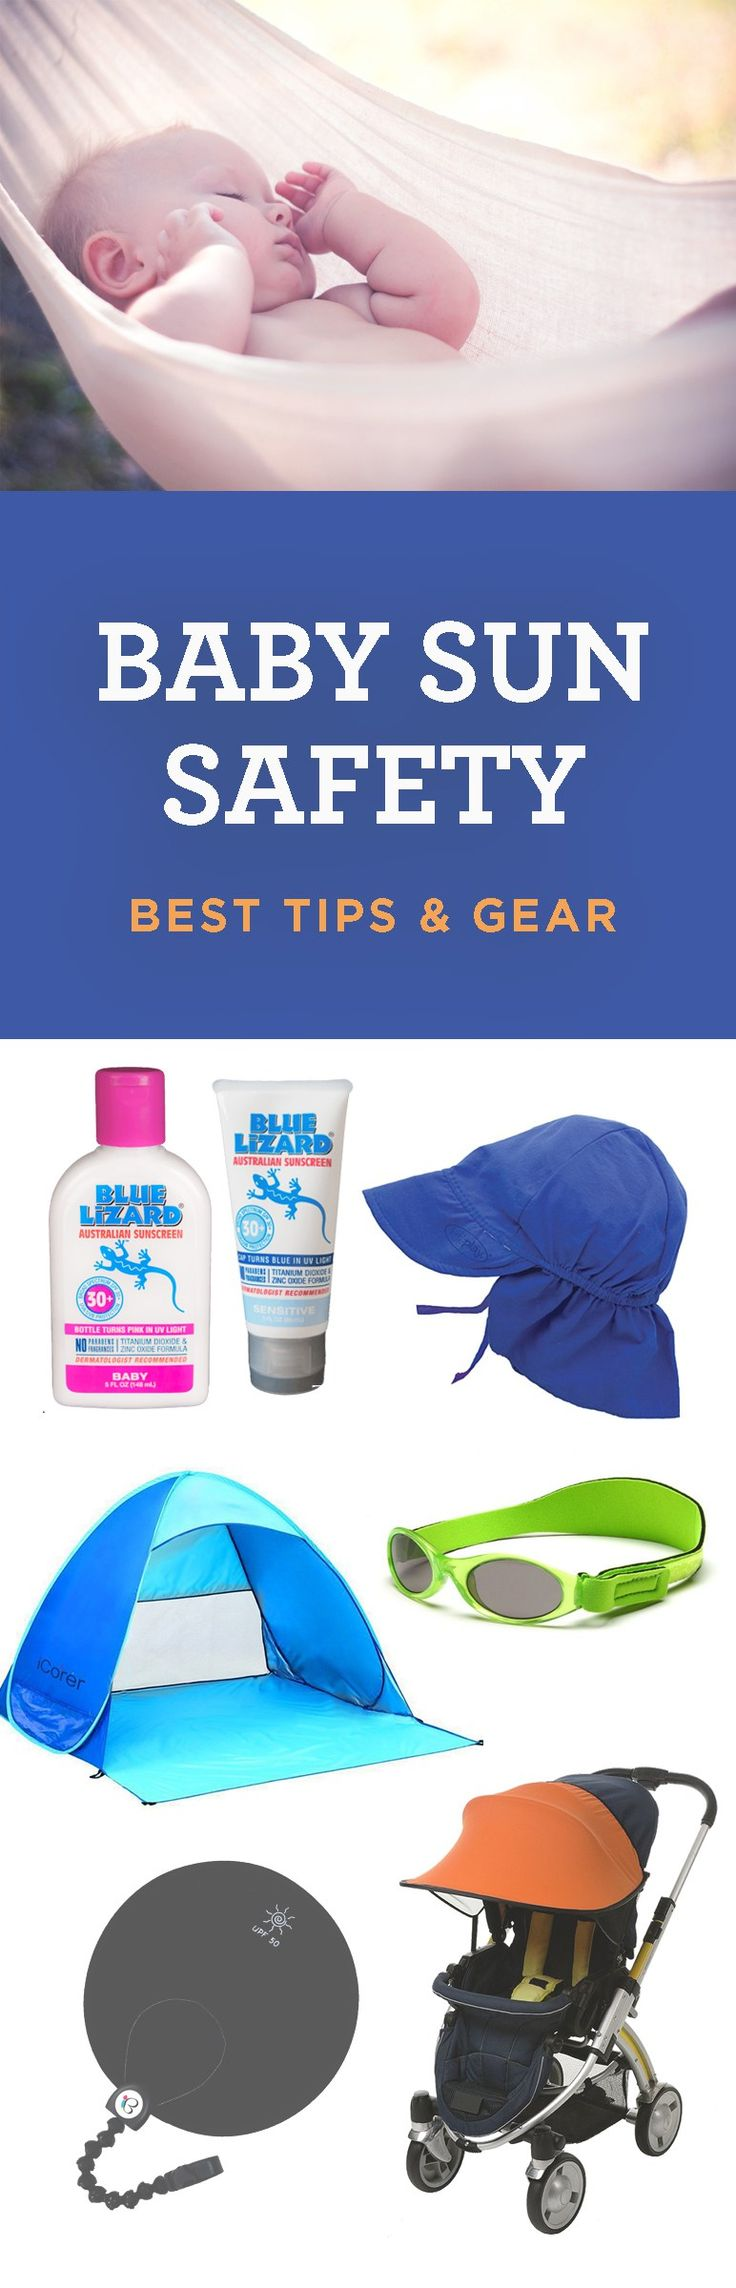 Here is the ultimate guide to sun safety tips for infants We cover all aspects of UV protection from sunblock vs sunscreen clothing, hats, sunglasses & more